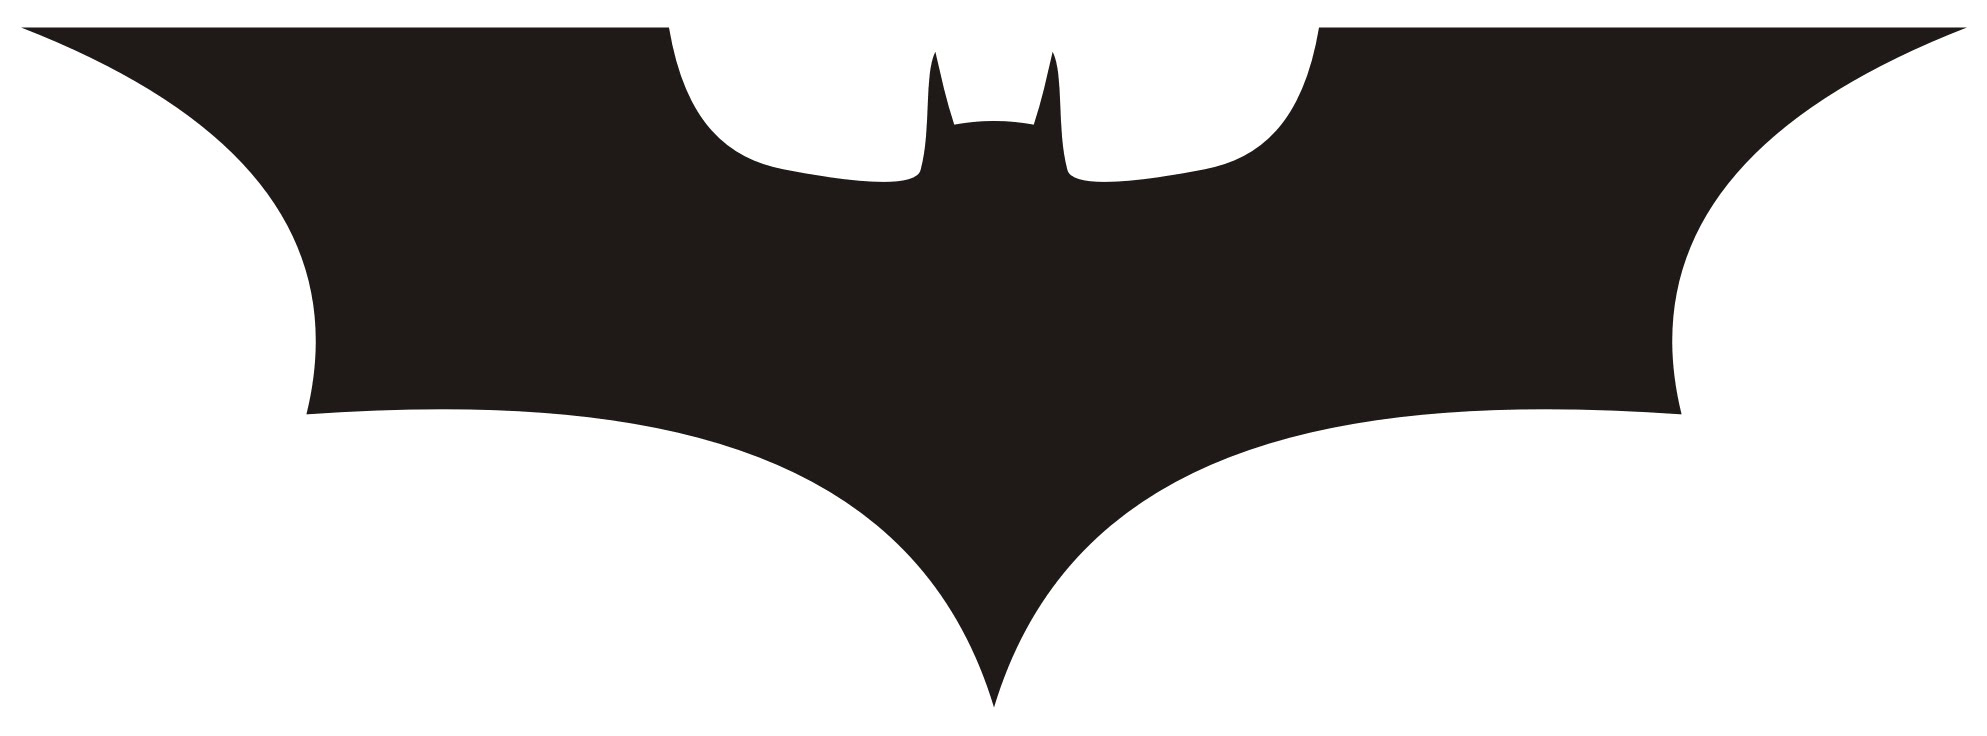 Batman clipart simple. How to draw logo